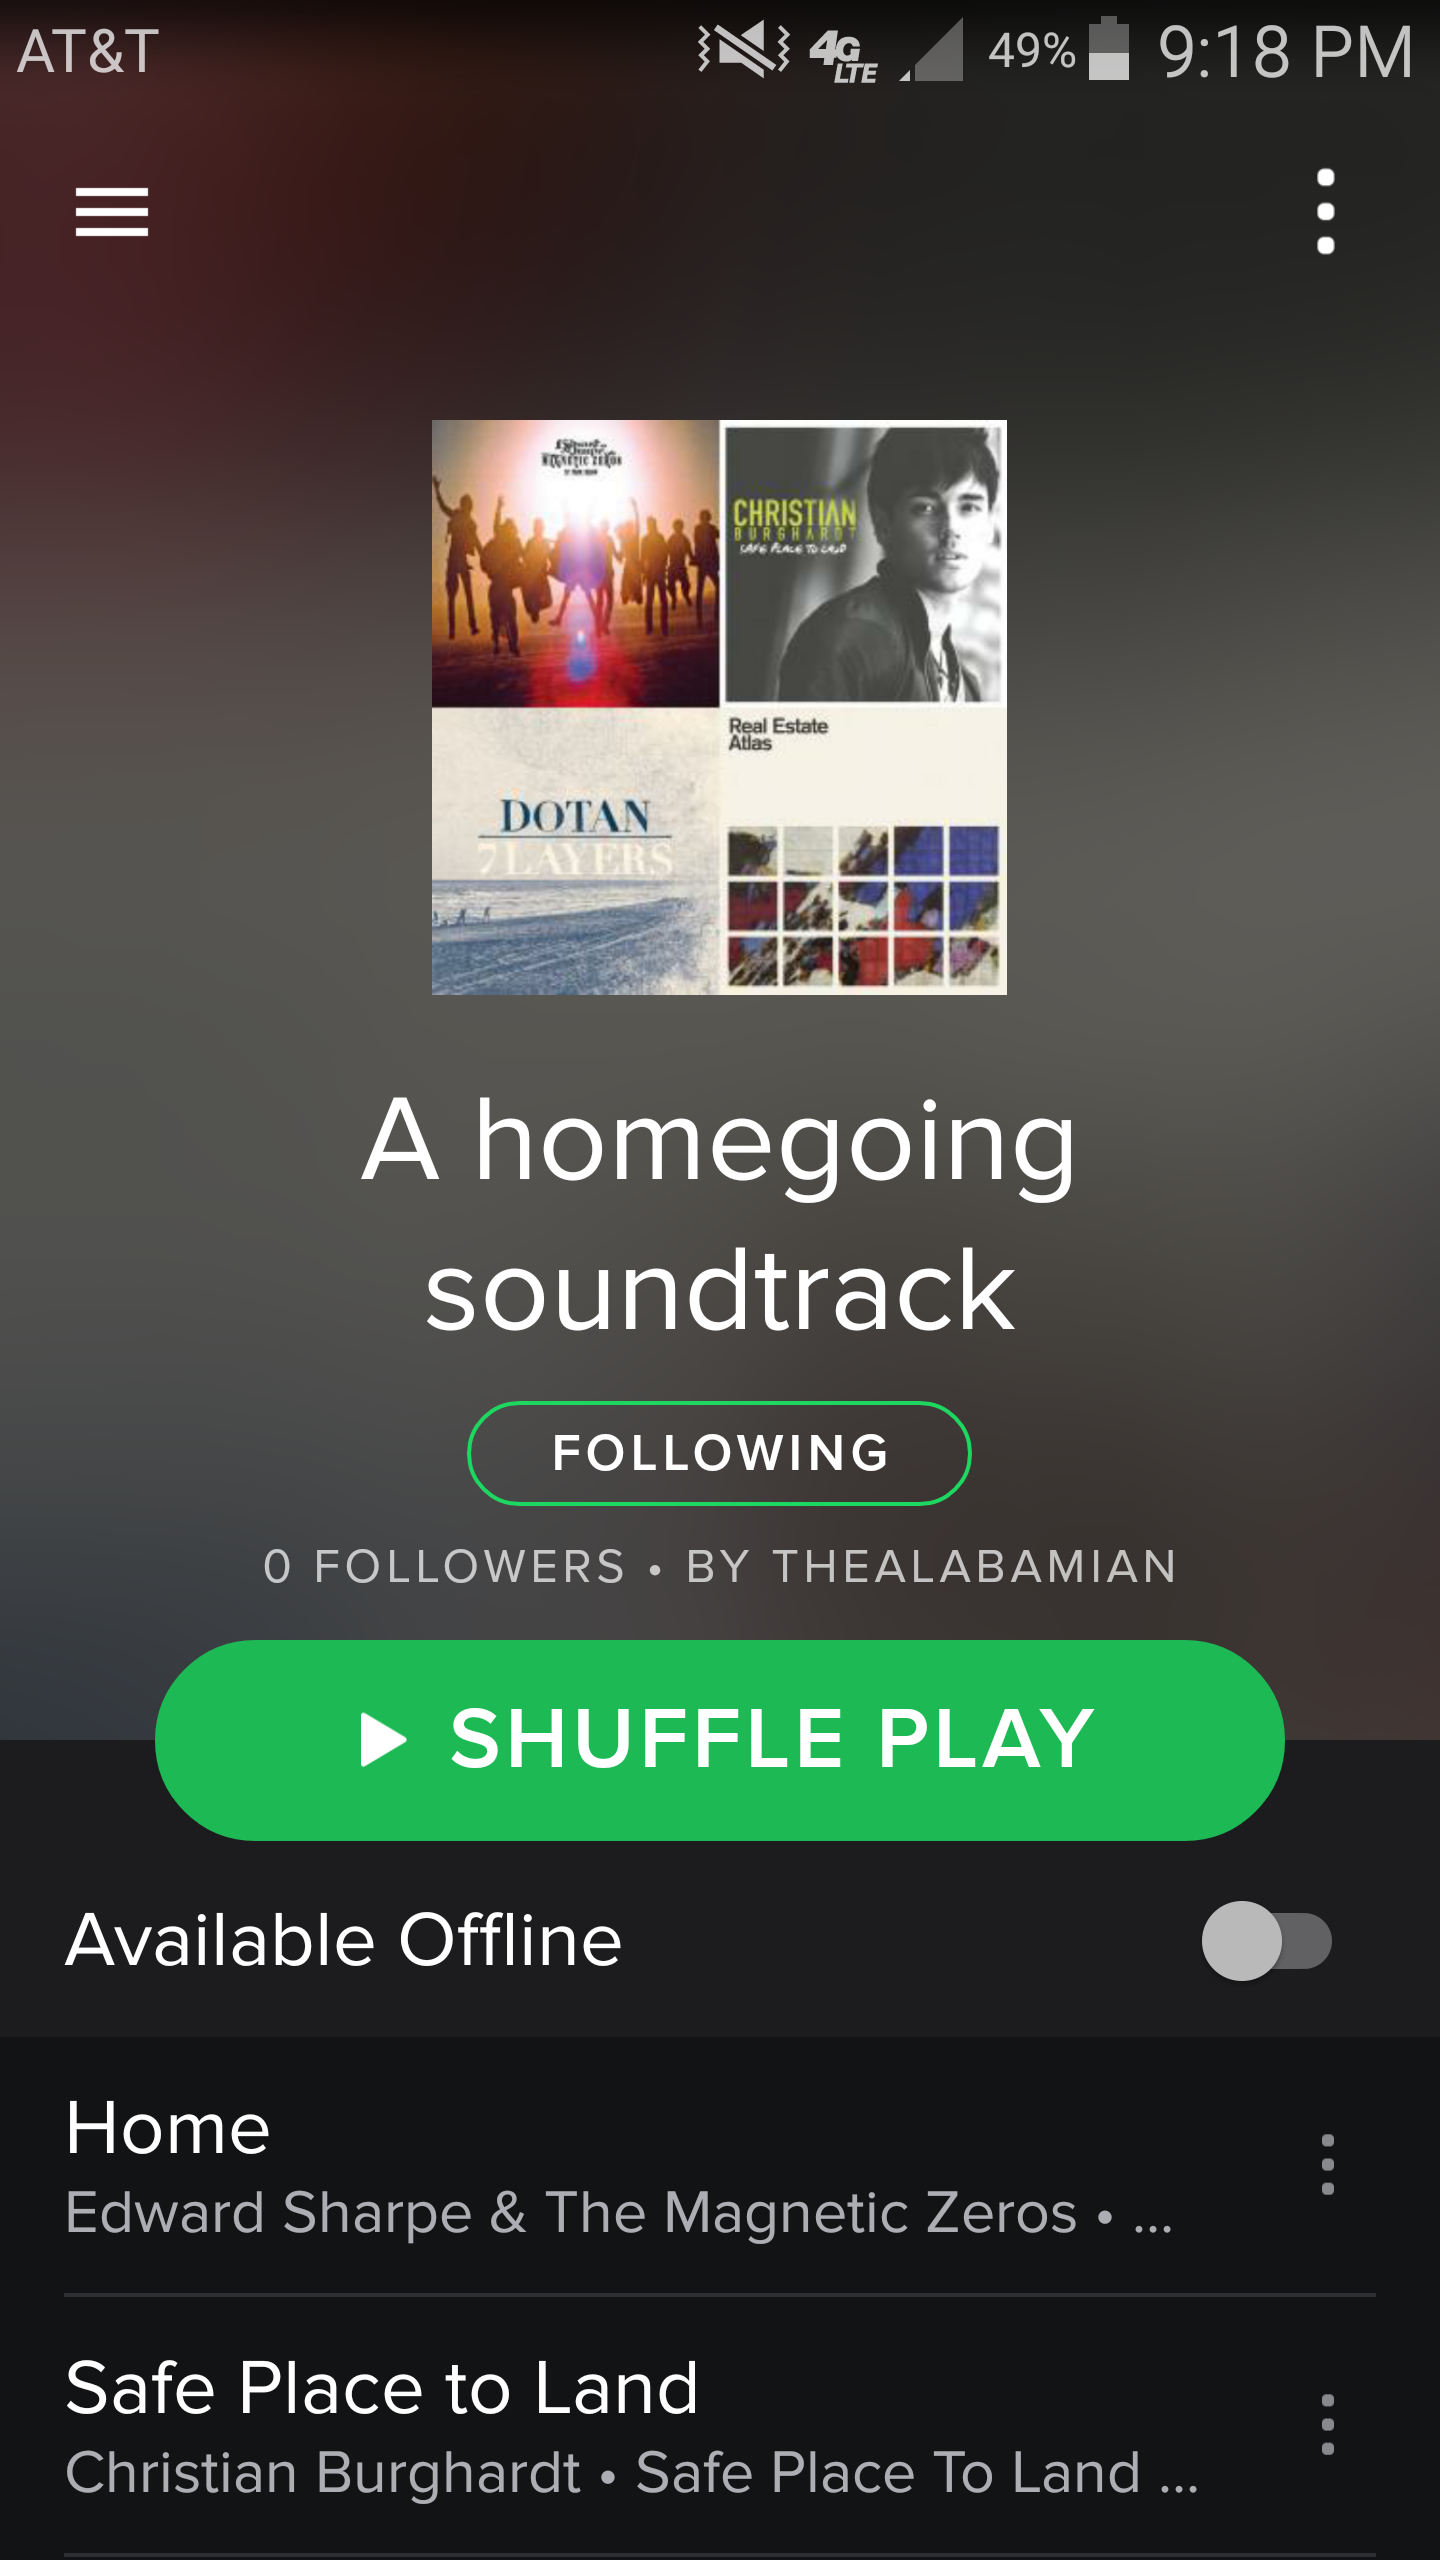 Spotify Playlist: A homecoming soundtrack